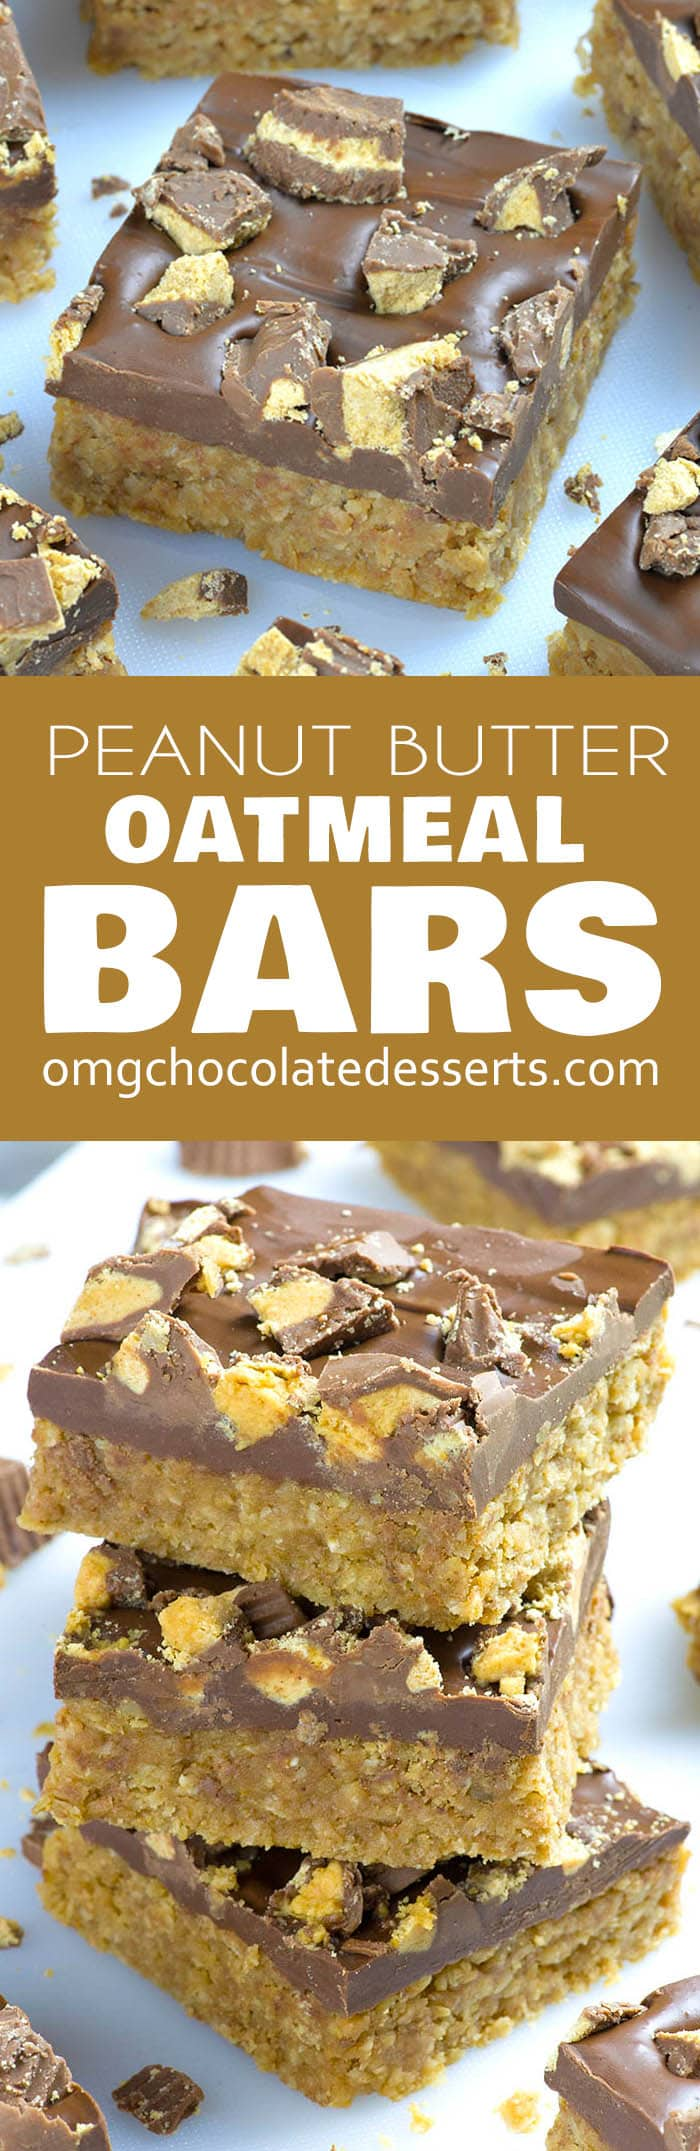 Whether you need a dessert or snack, no bake Reese's Peanut Butter Oatmeal Bars recipe will satisfy your taste buds!  Peanut butter oatmeal bars with chocolate frosting and pieces of Reese's cups on top, are sure to please.